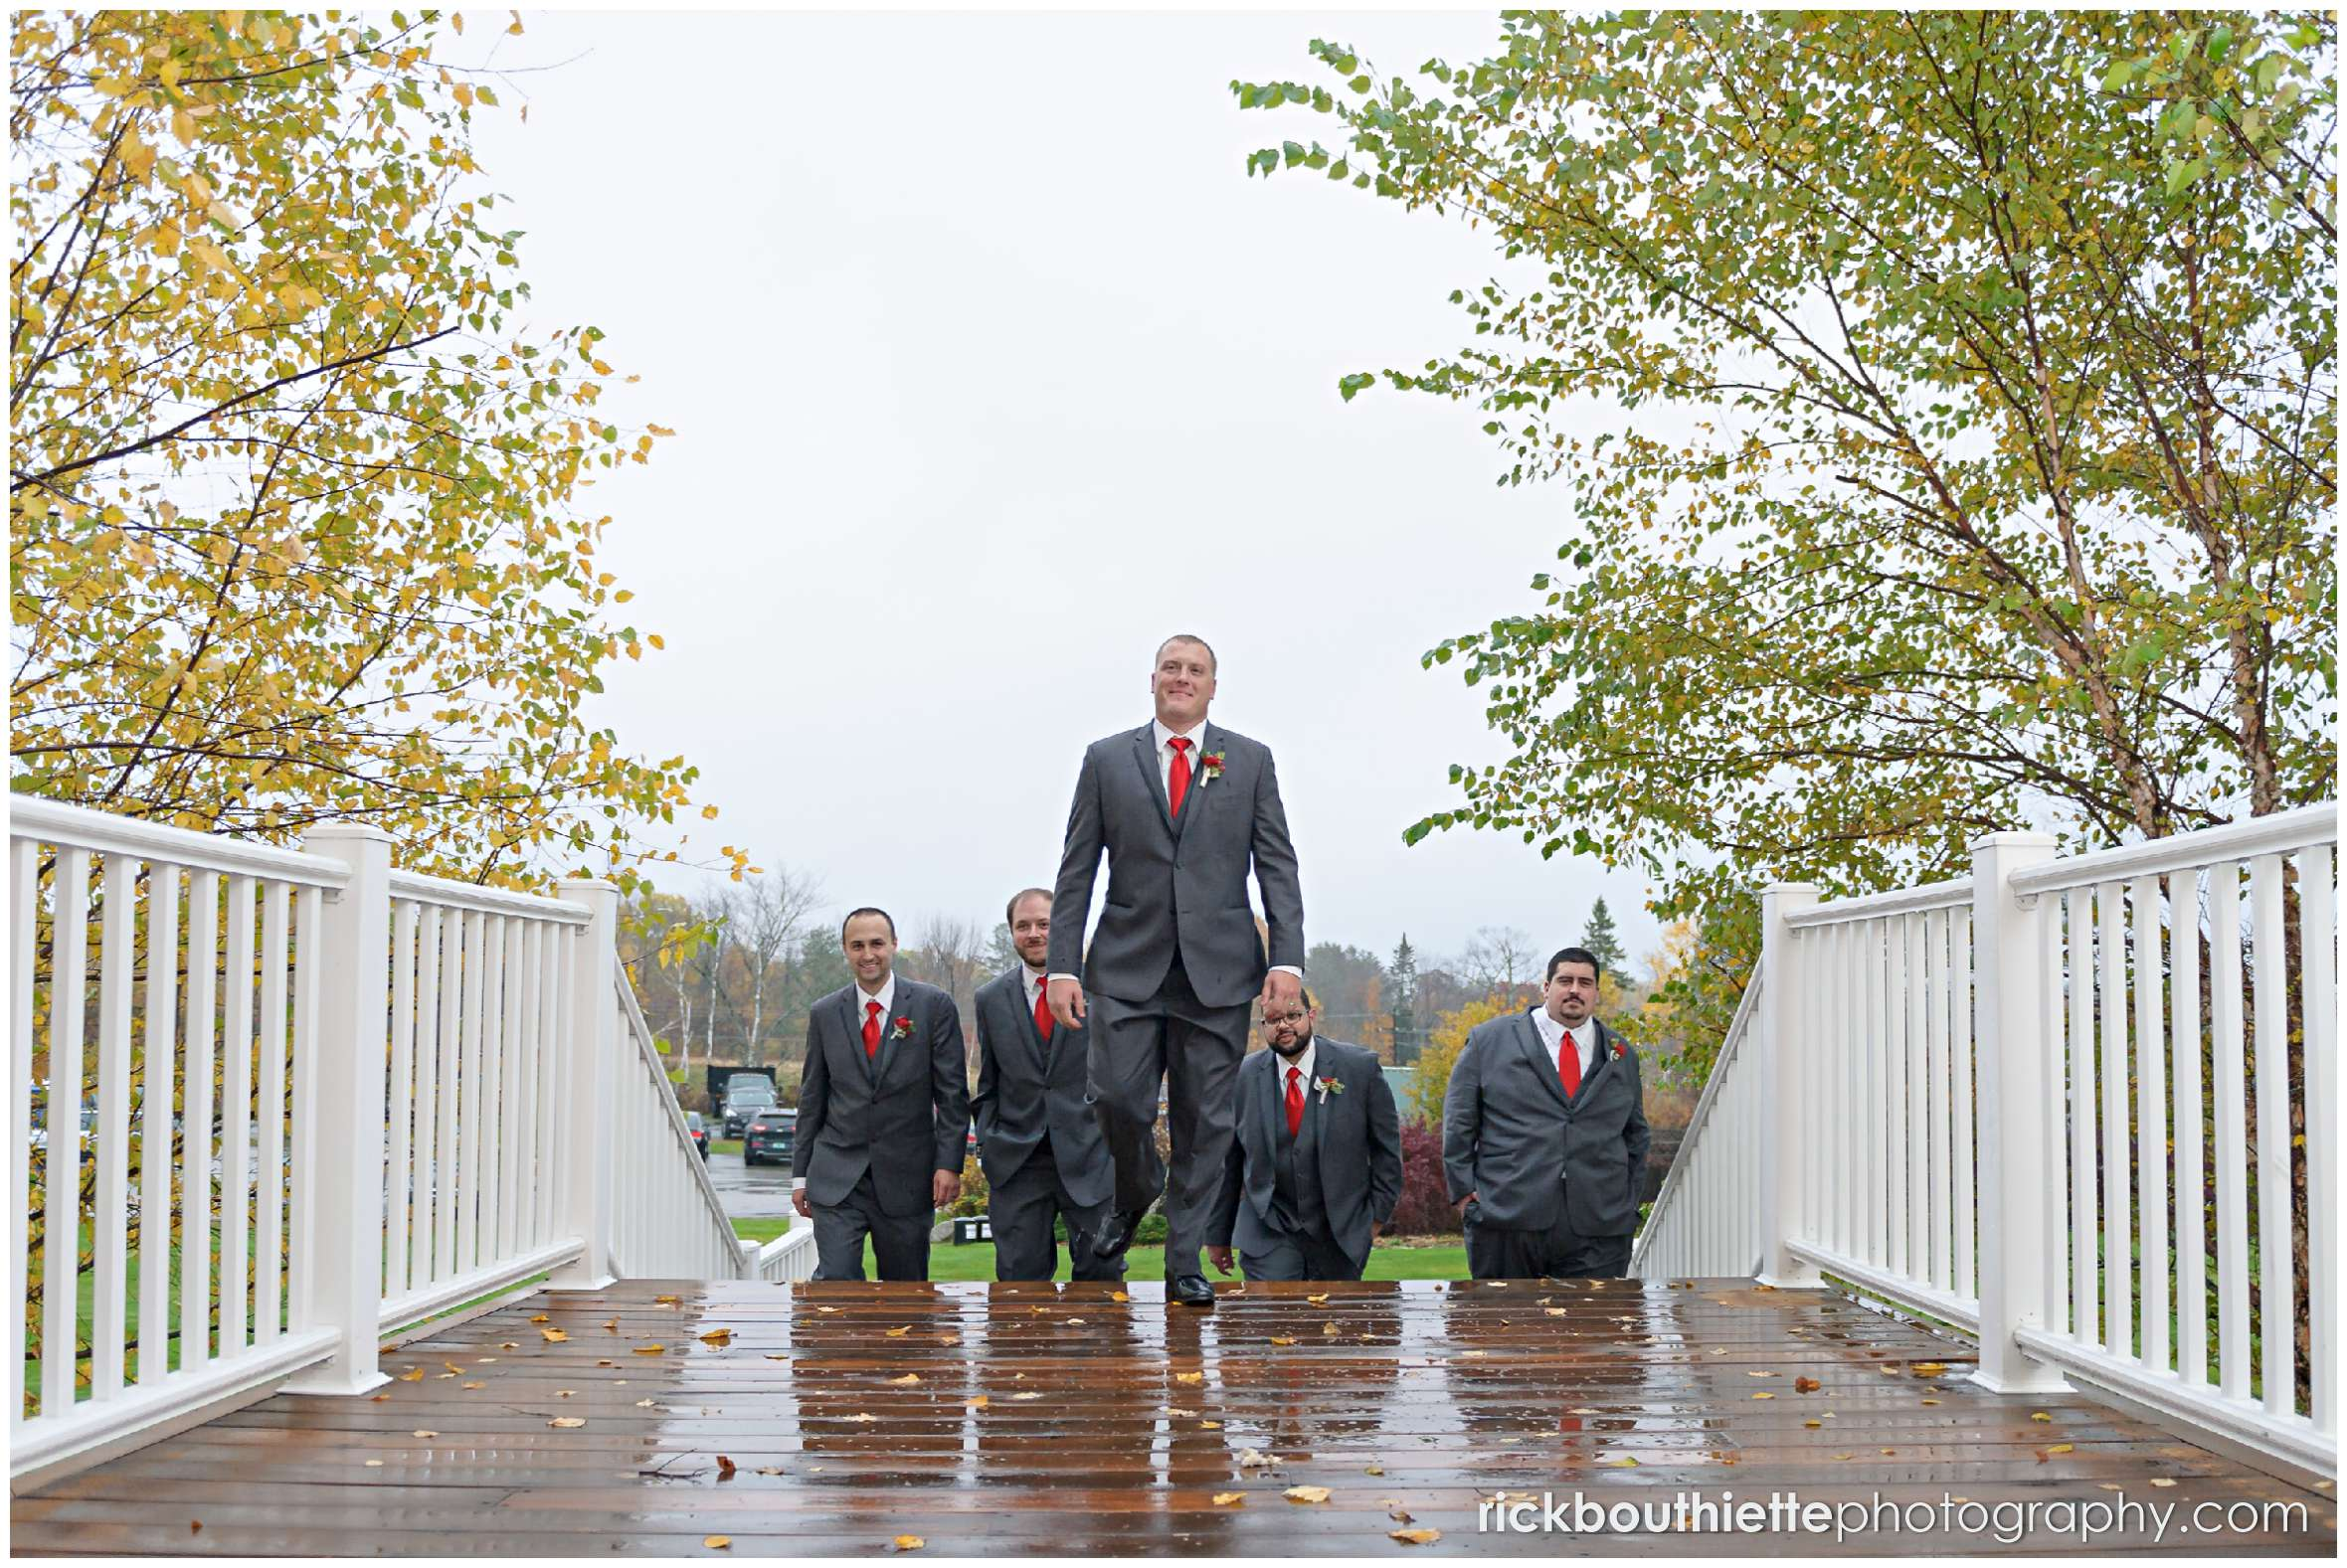 the groom and his groomsmen coming up the stairs at mountain view grand resort